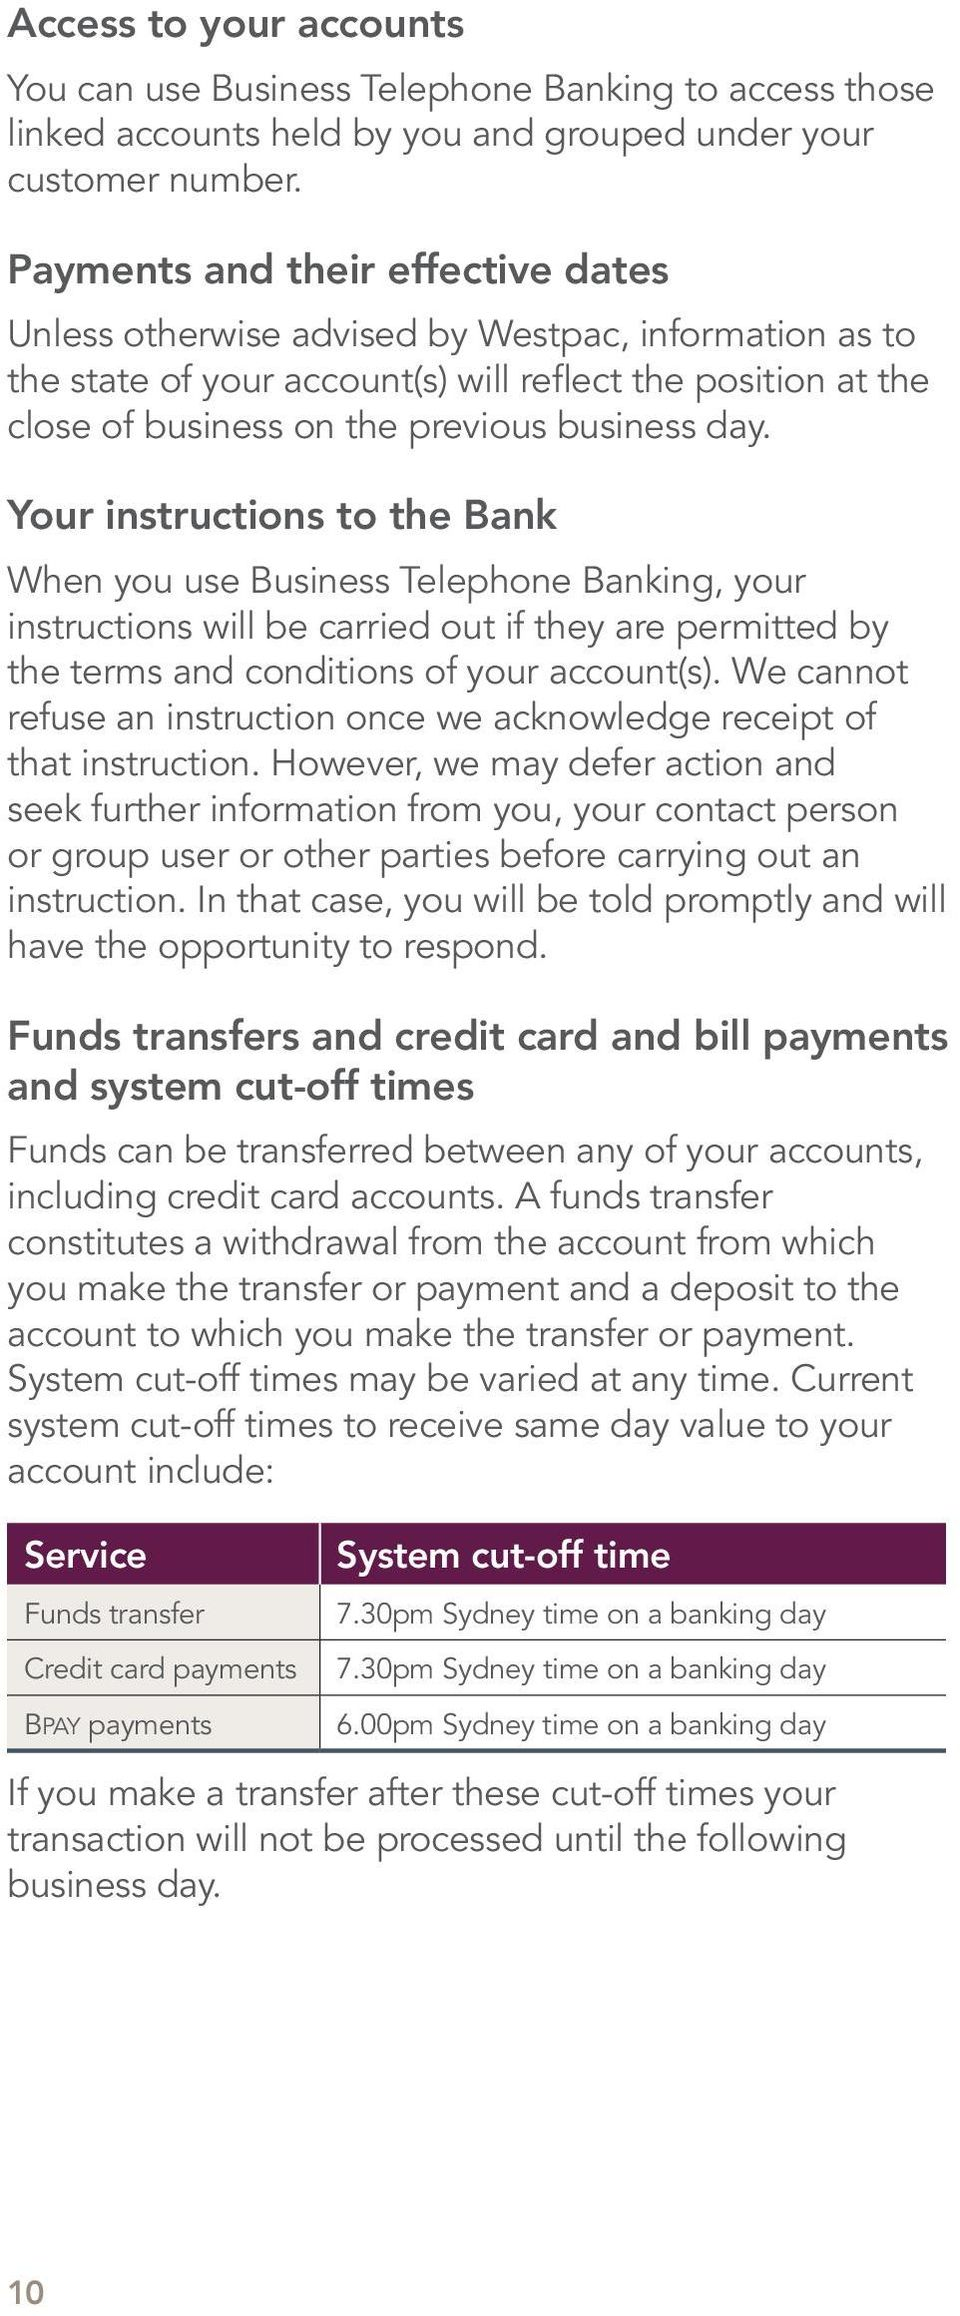 Your instructions to the Bank When you use Business Telephone Banking, your instructions will be carried out if they are permitted by the terms and conditions of your account(s).